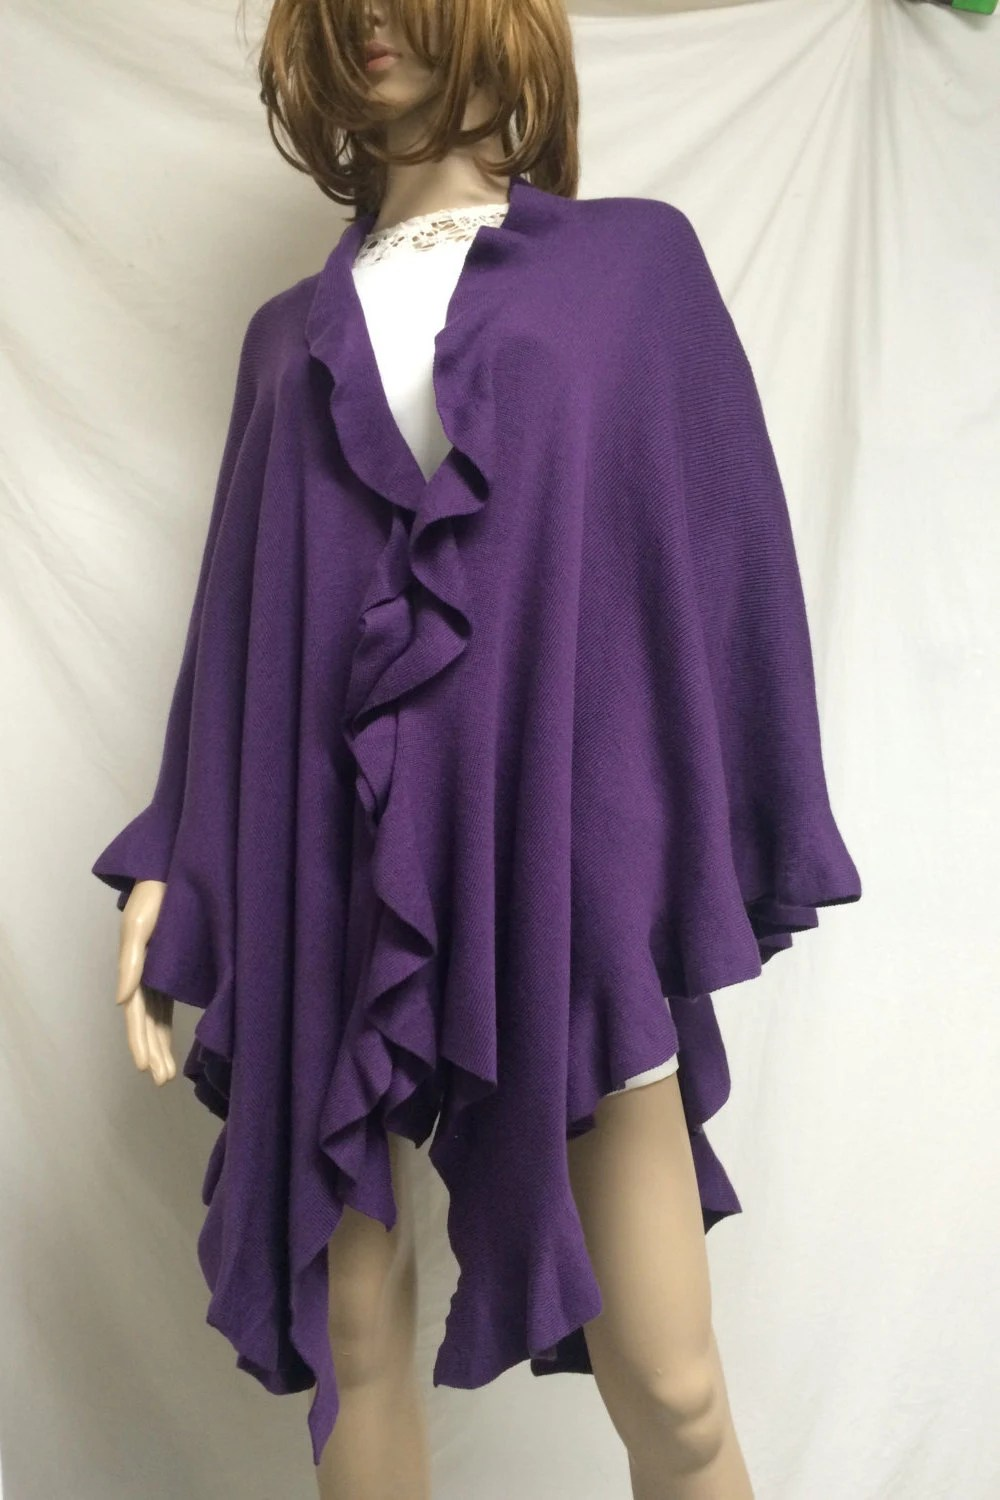 Knit shawllarge purple knit shawl ruffled wrap